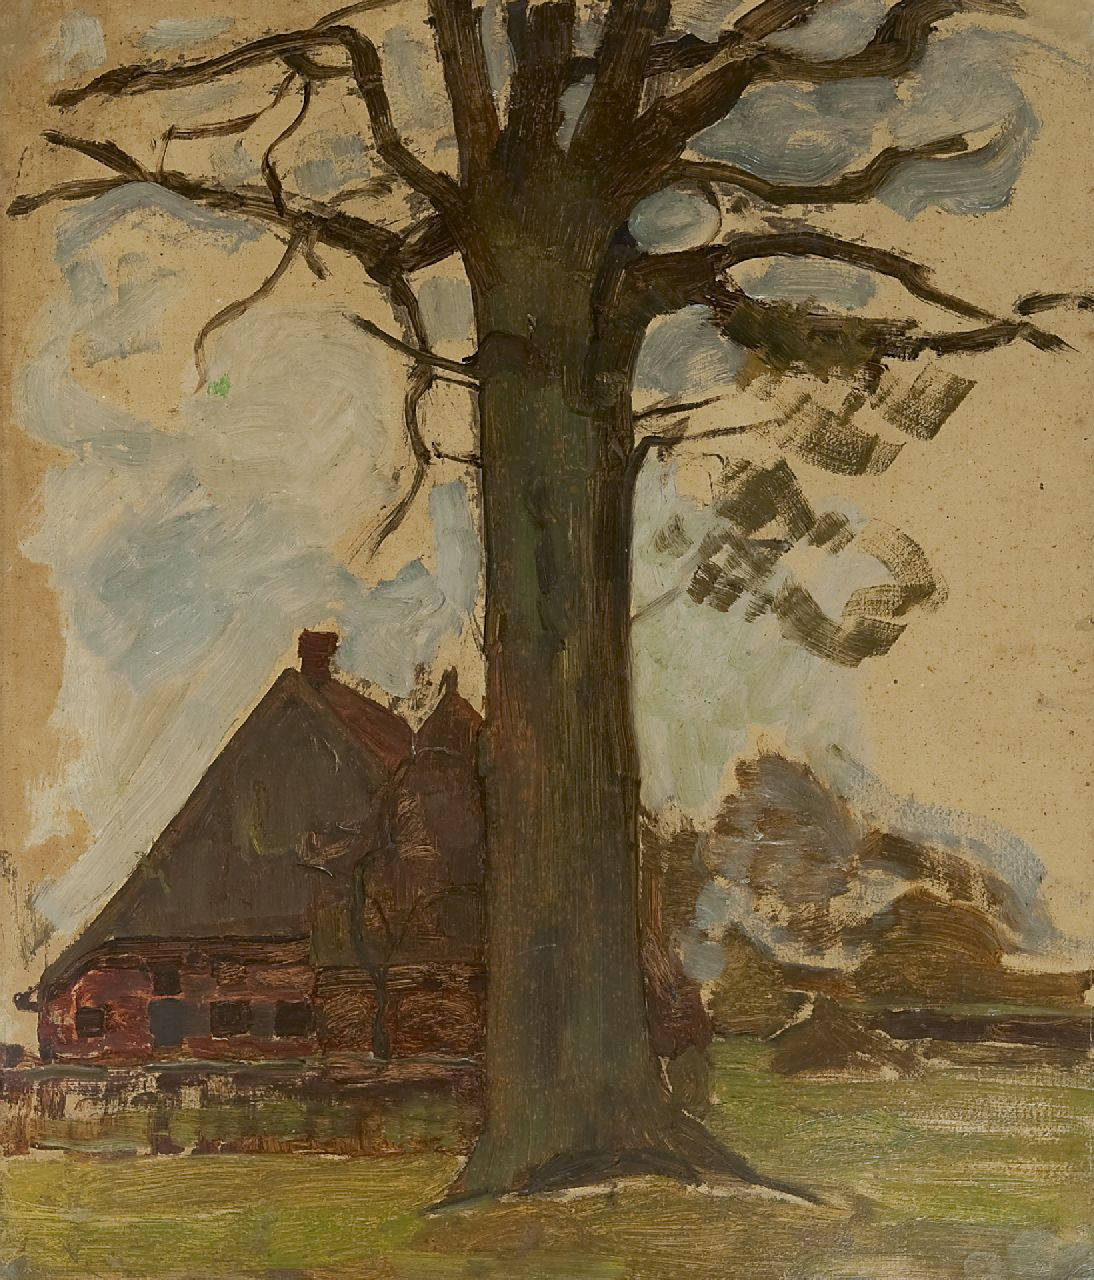 Mondriaan P.C.  | Pieter Cornelis 'Piet' Mondriaan | Paintings offered for sale | Farm with tree, oil on board laid down on panel 75.5 x 64.0 cm, painted circa 1906-1907